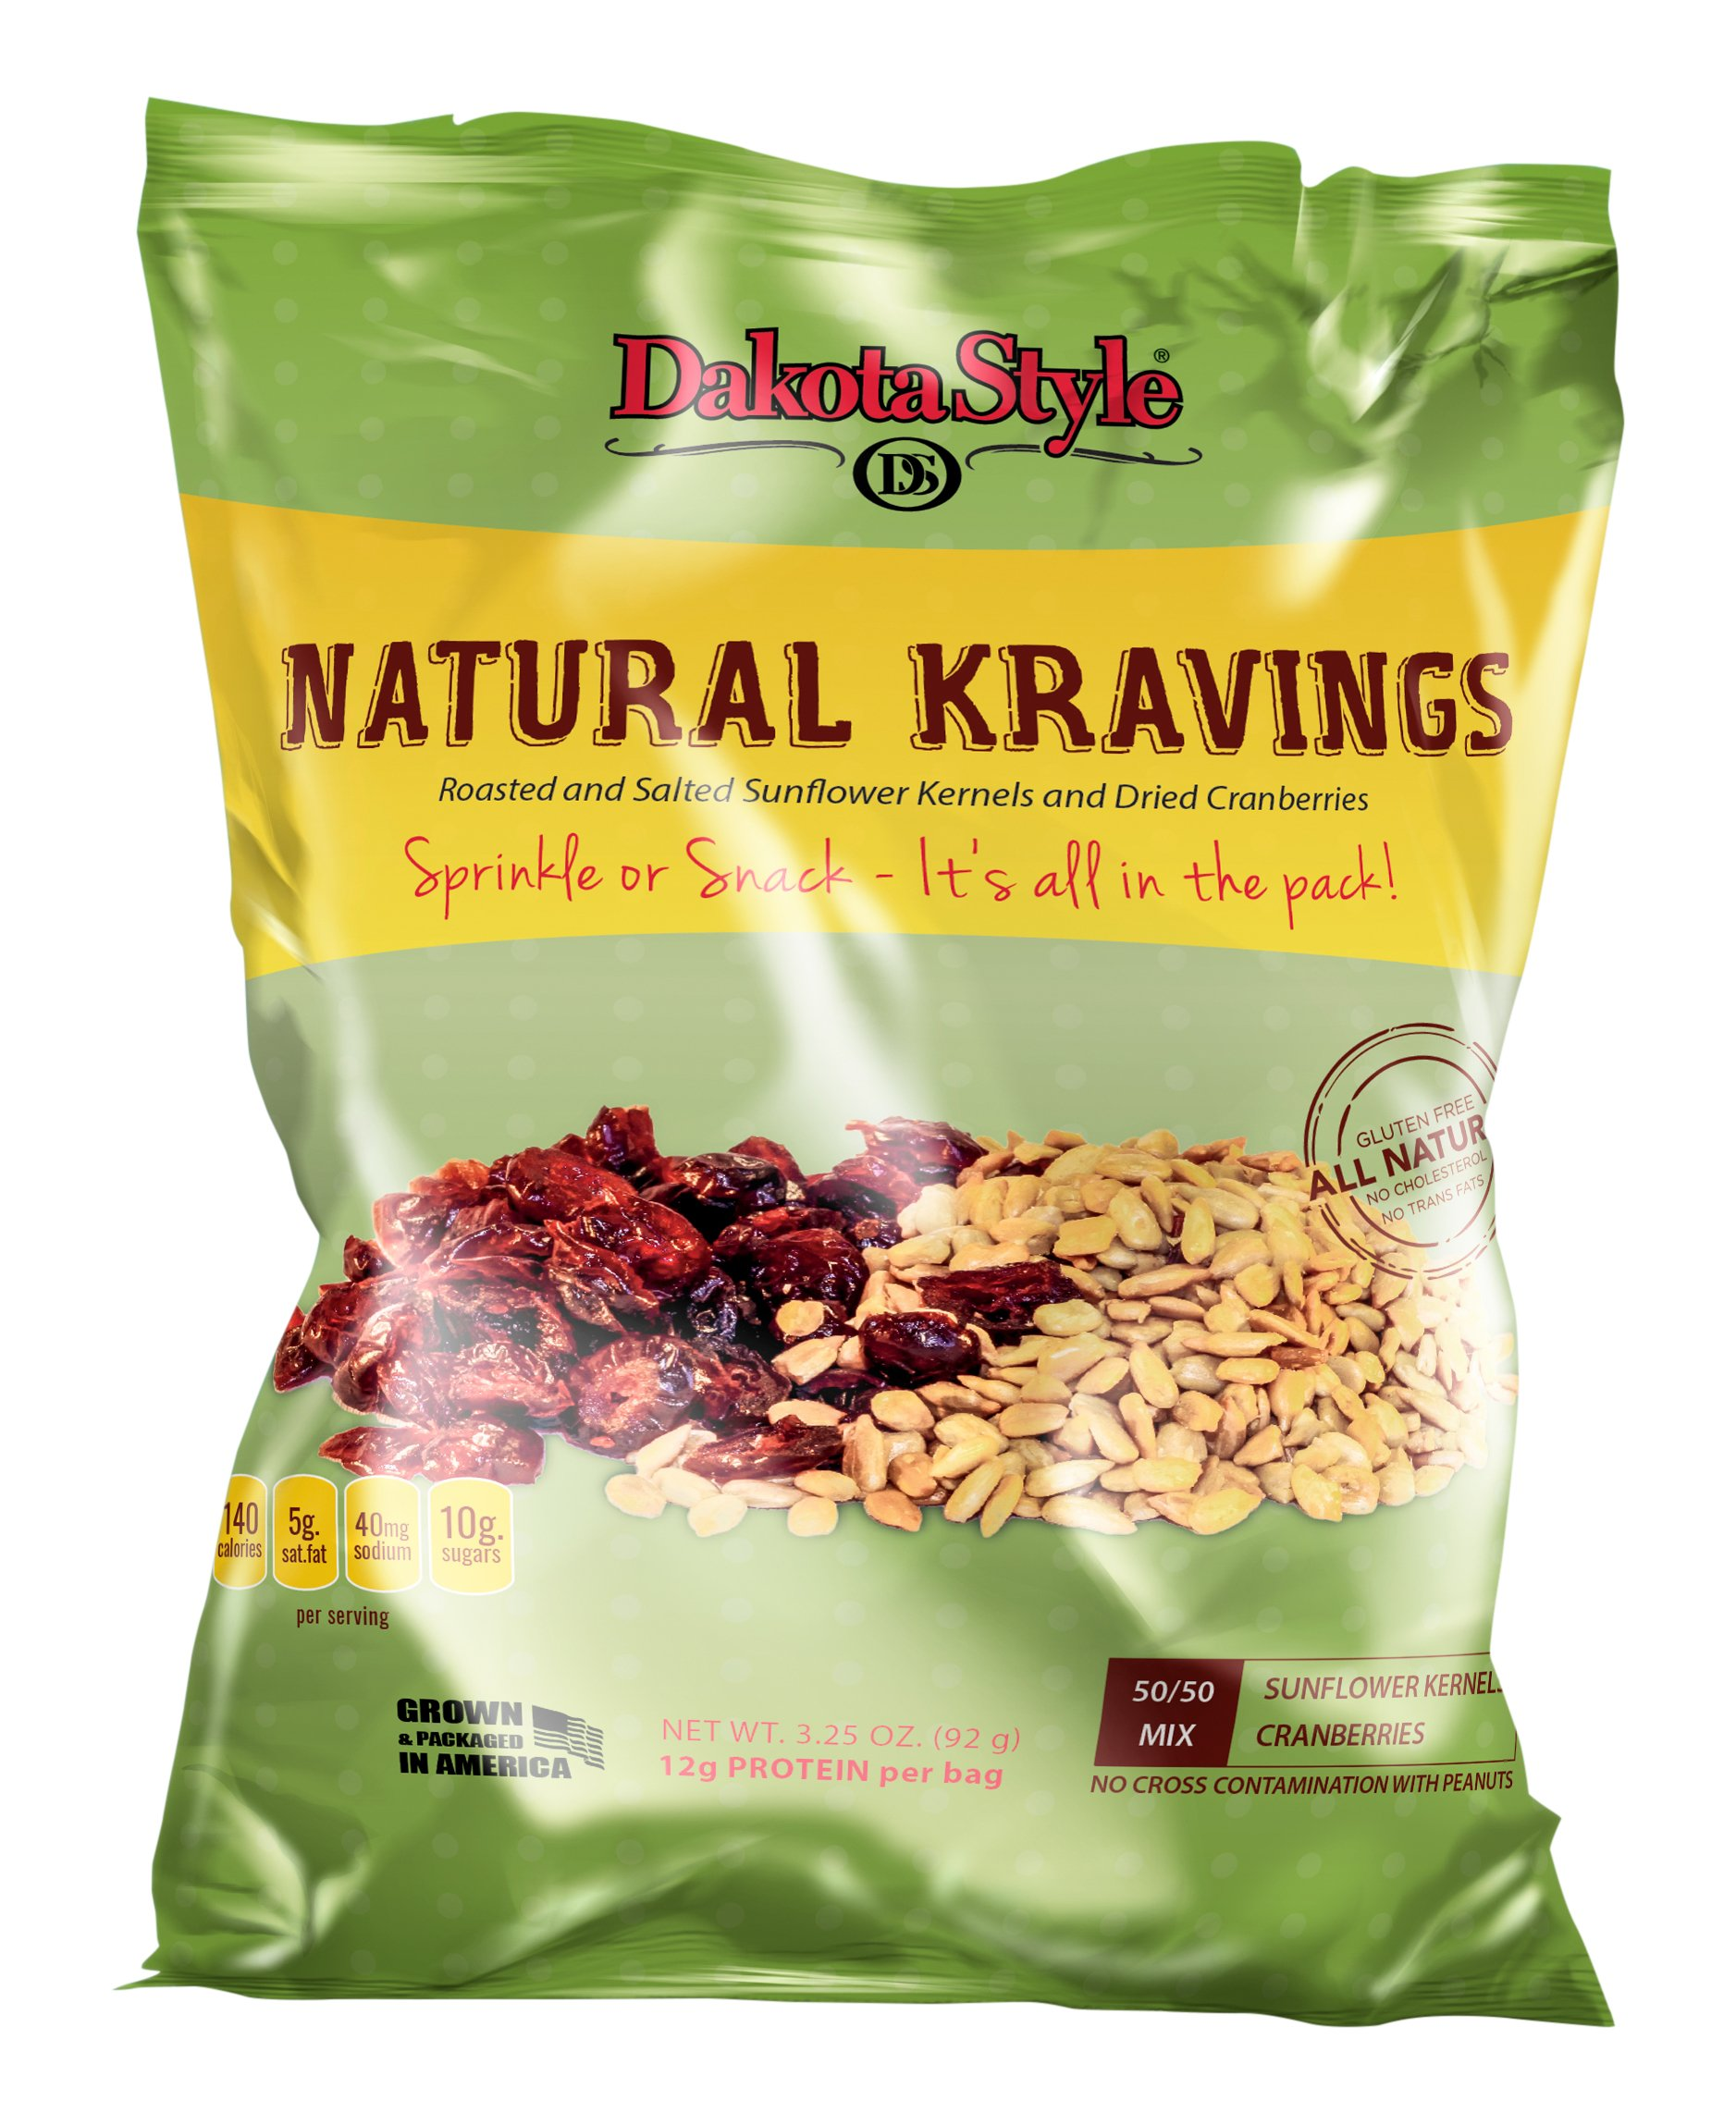 Dakota Style Roasted & Salted Sunflower Natural Kernels combined with Dried Cranberries, 3.25 Ounce (Pack of 12)